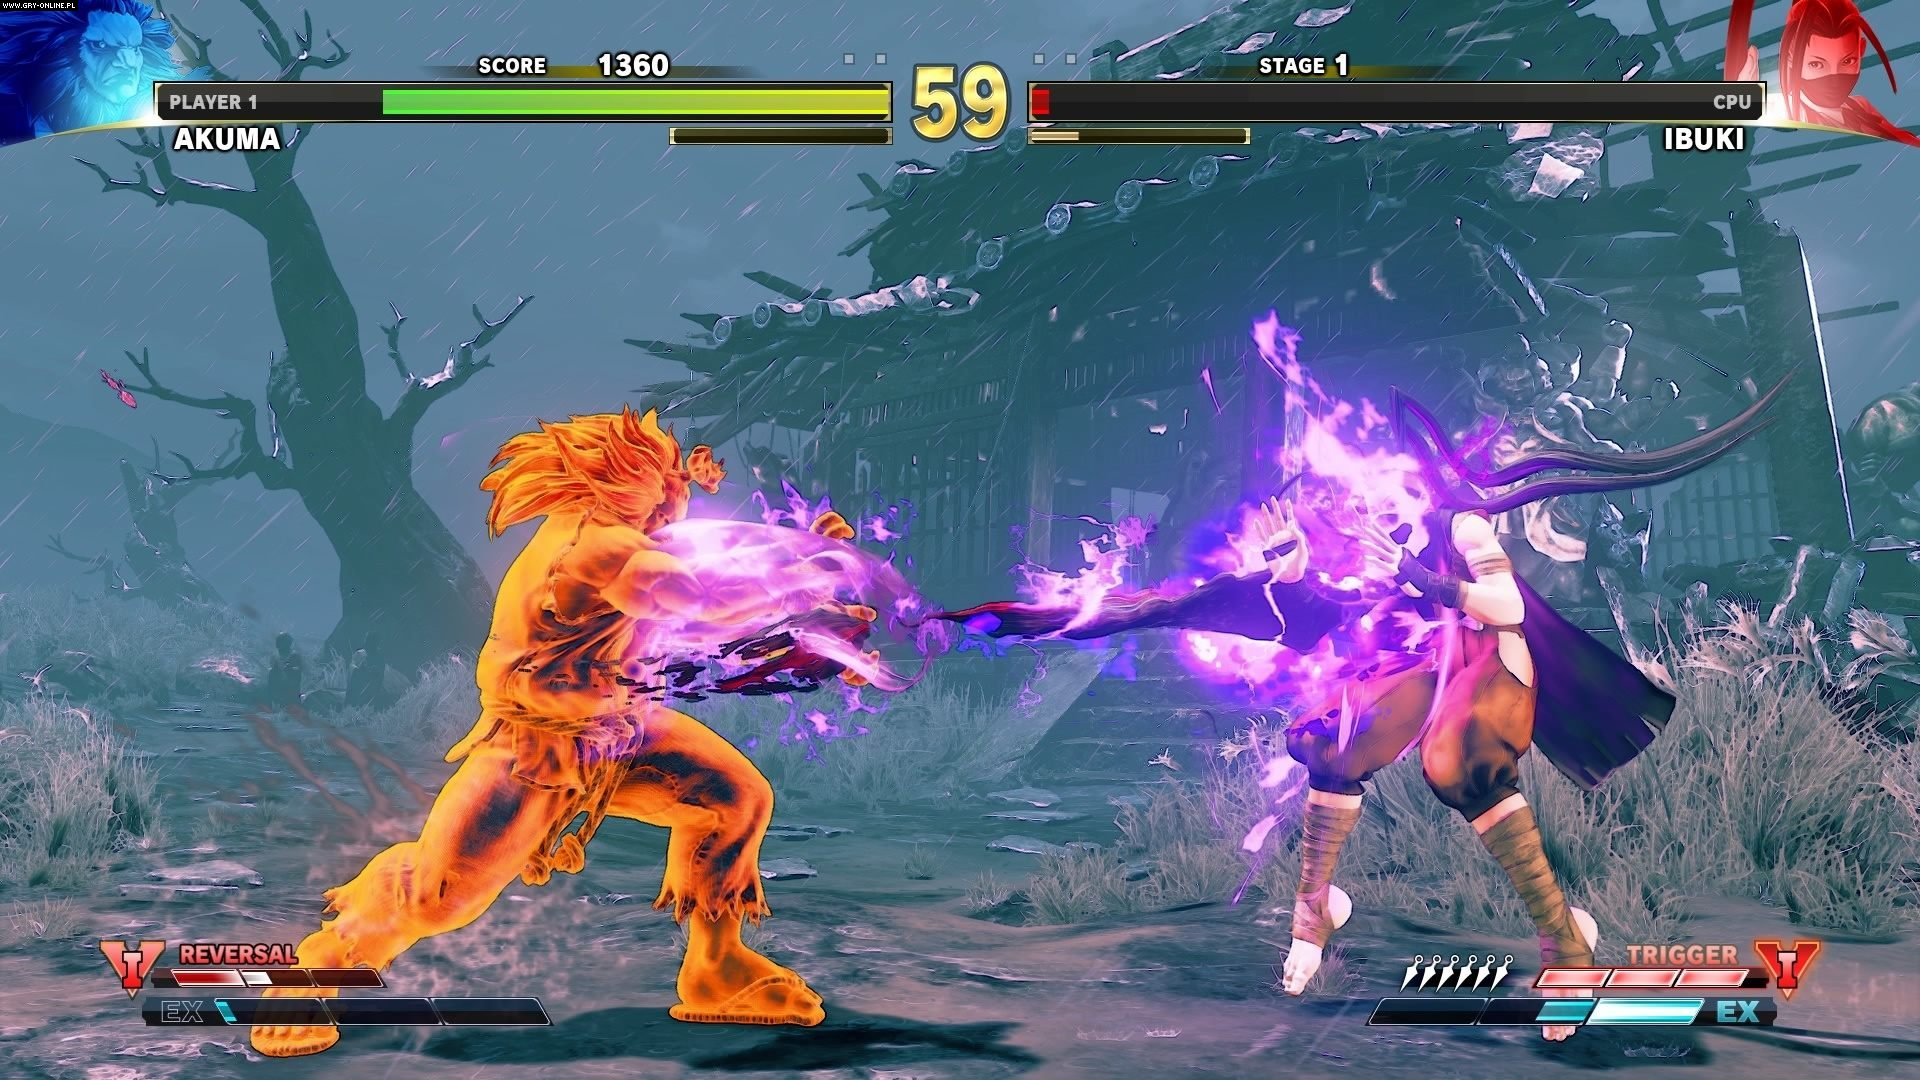 Street Fighter V: Arcade Edition PC, PS4 Gry Screen 73/107, Capcom